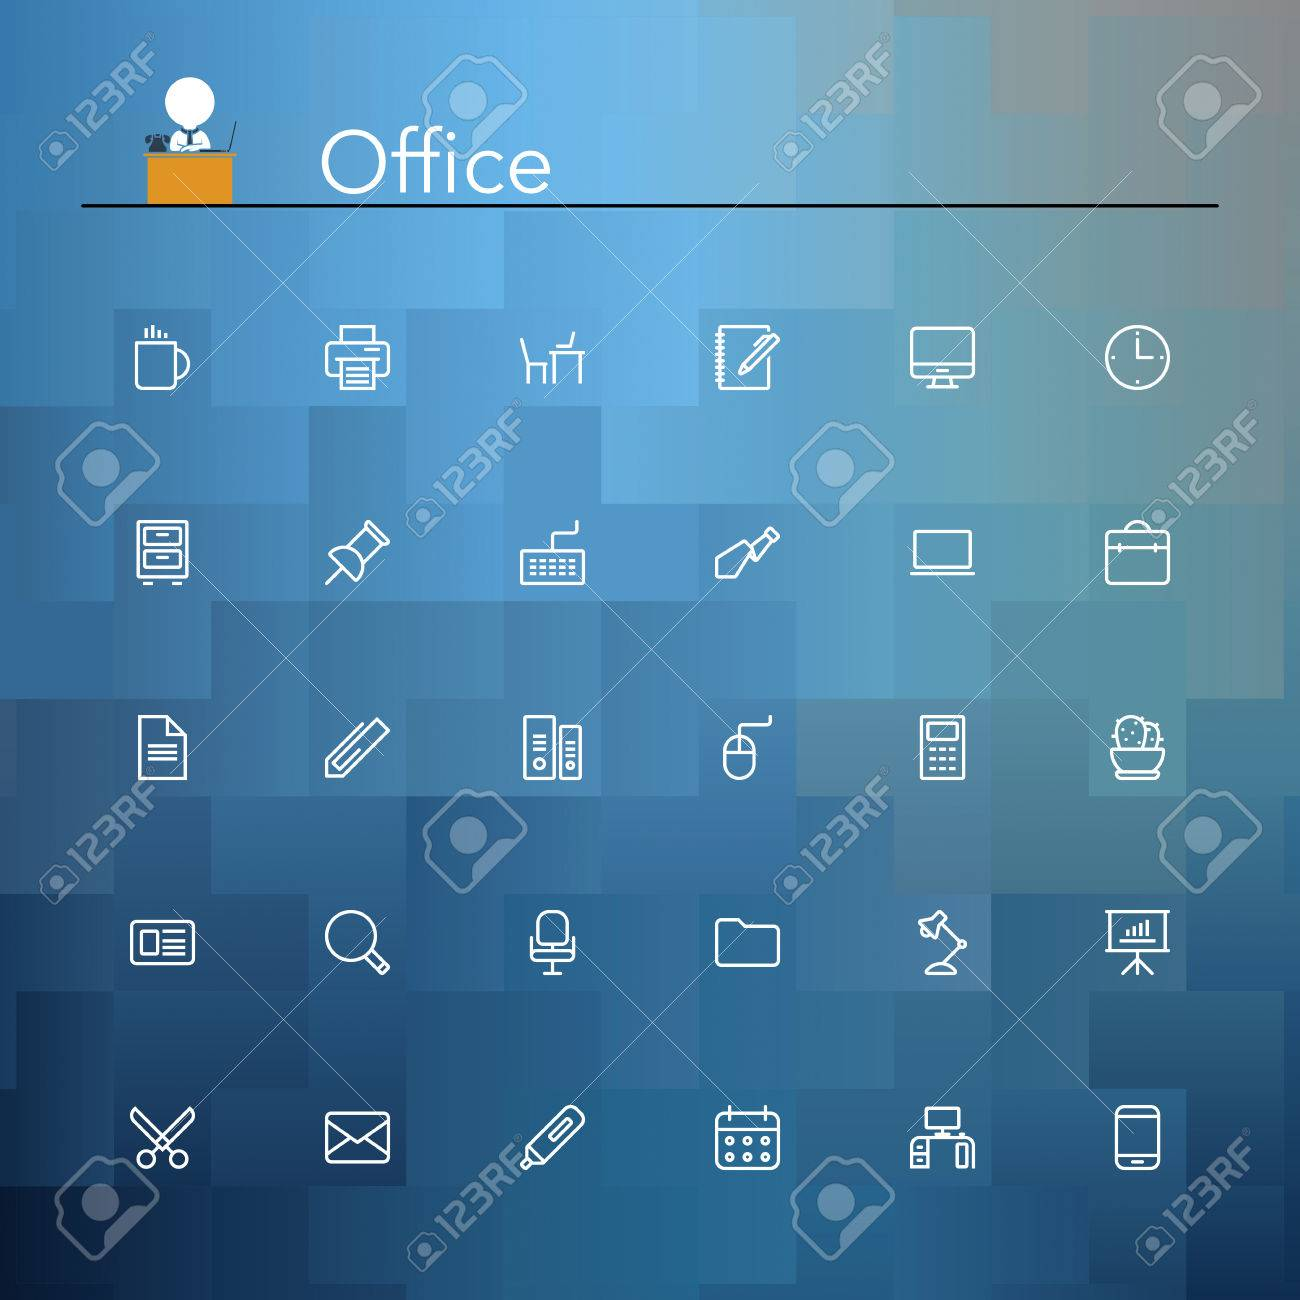 Office and workplace line Icons set. Vector illustration. Stock Vector - 32571194